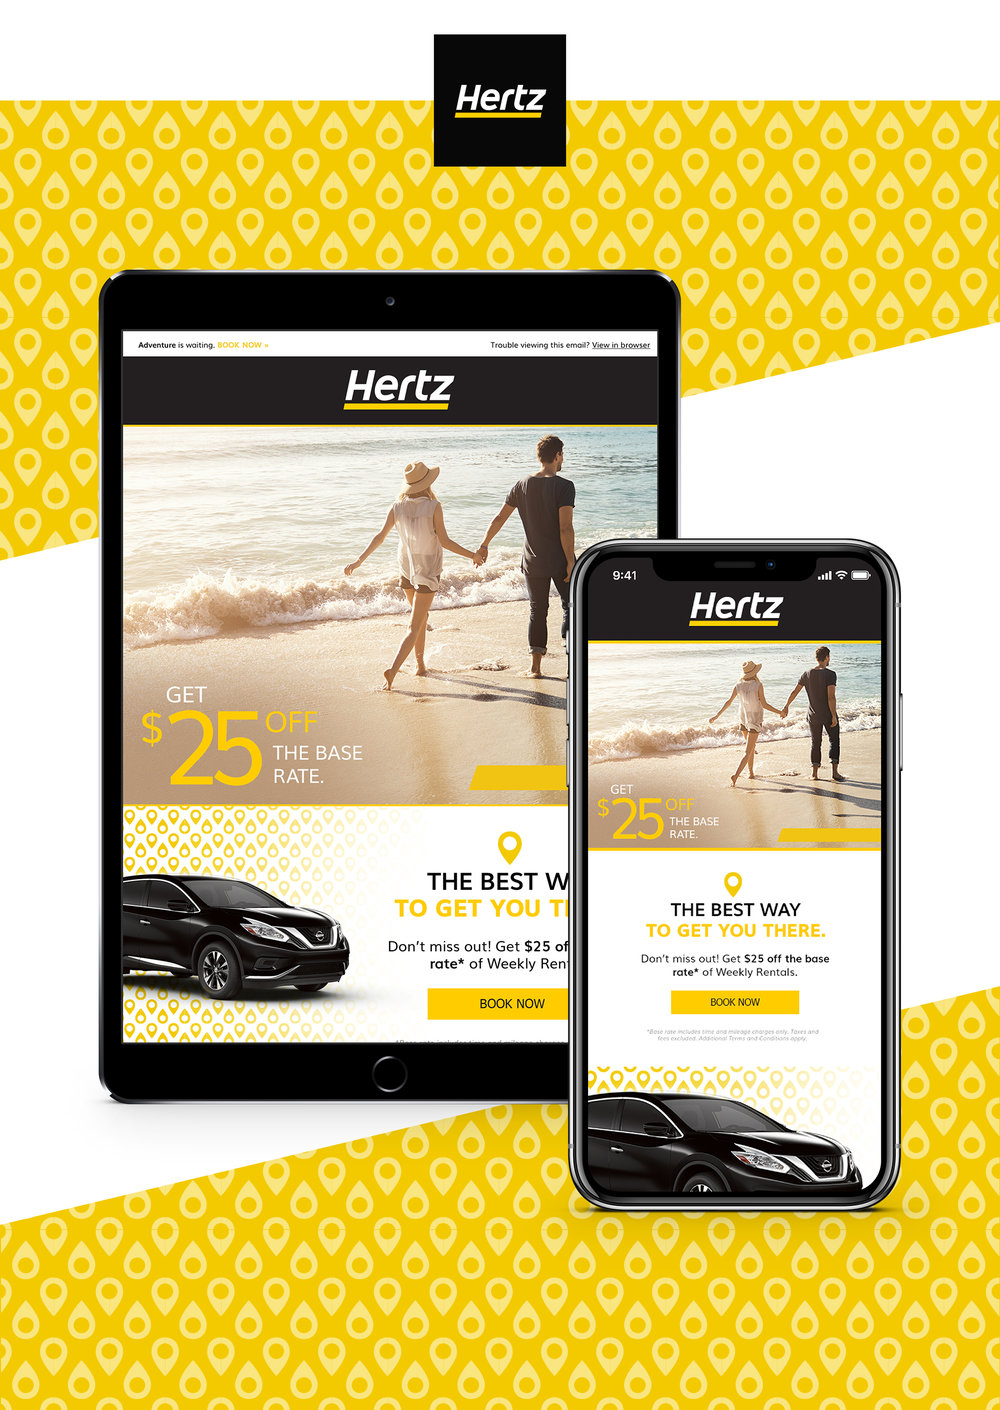 HERTZ CAR RENTAL BRAND REFRESH